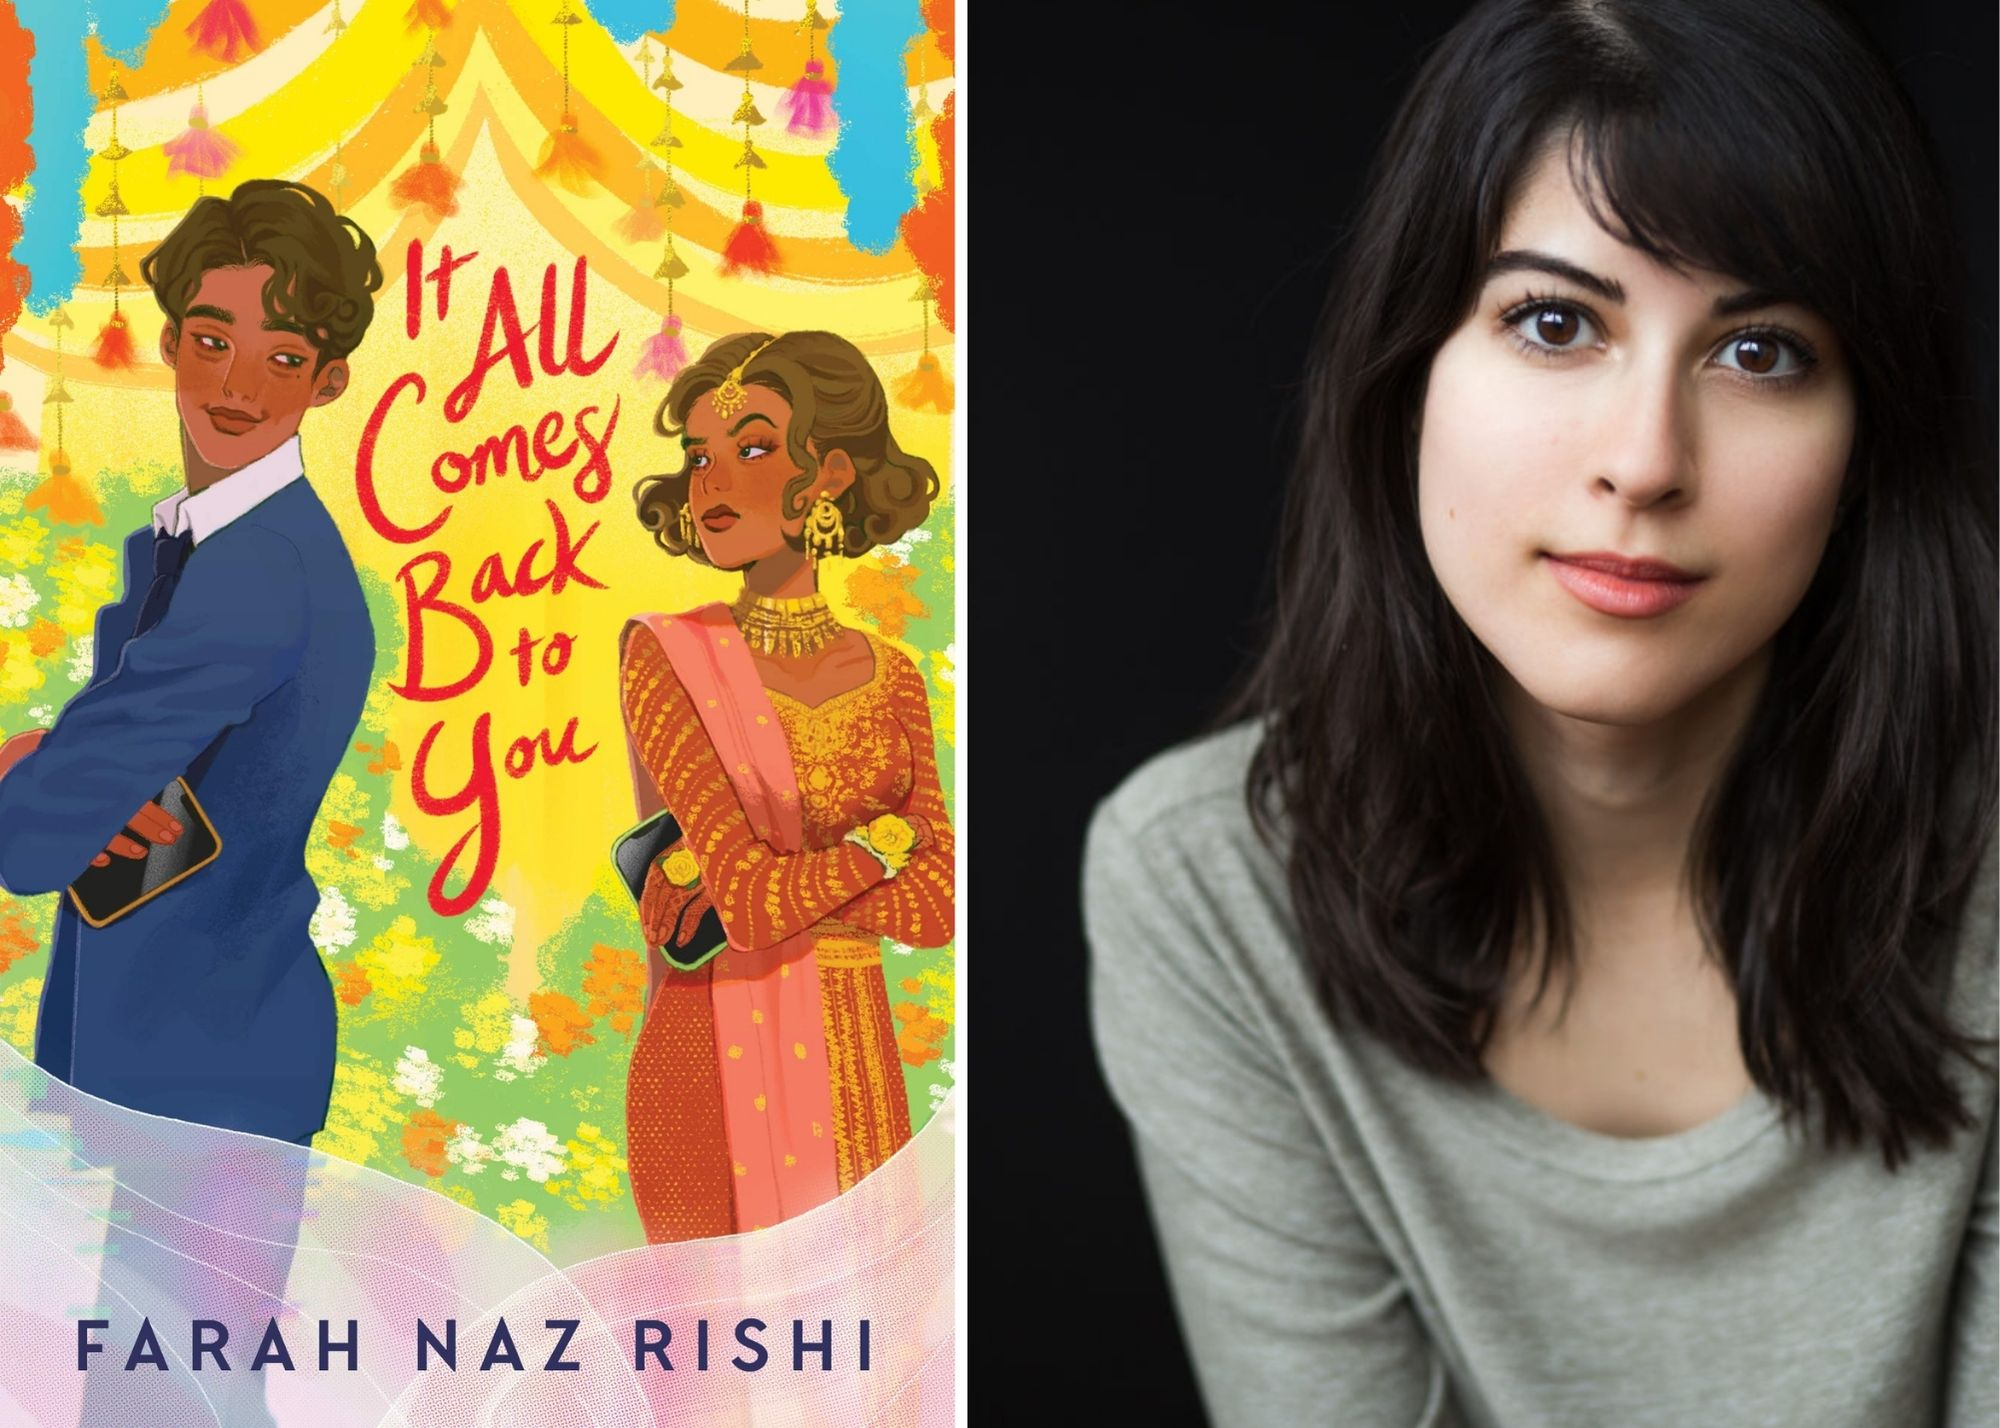 Book Review: It All Comes Back to You by Farah Naz Rishi